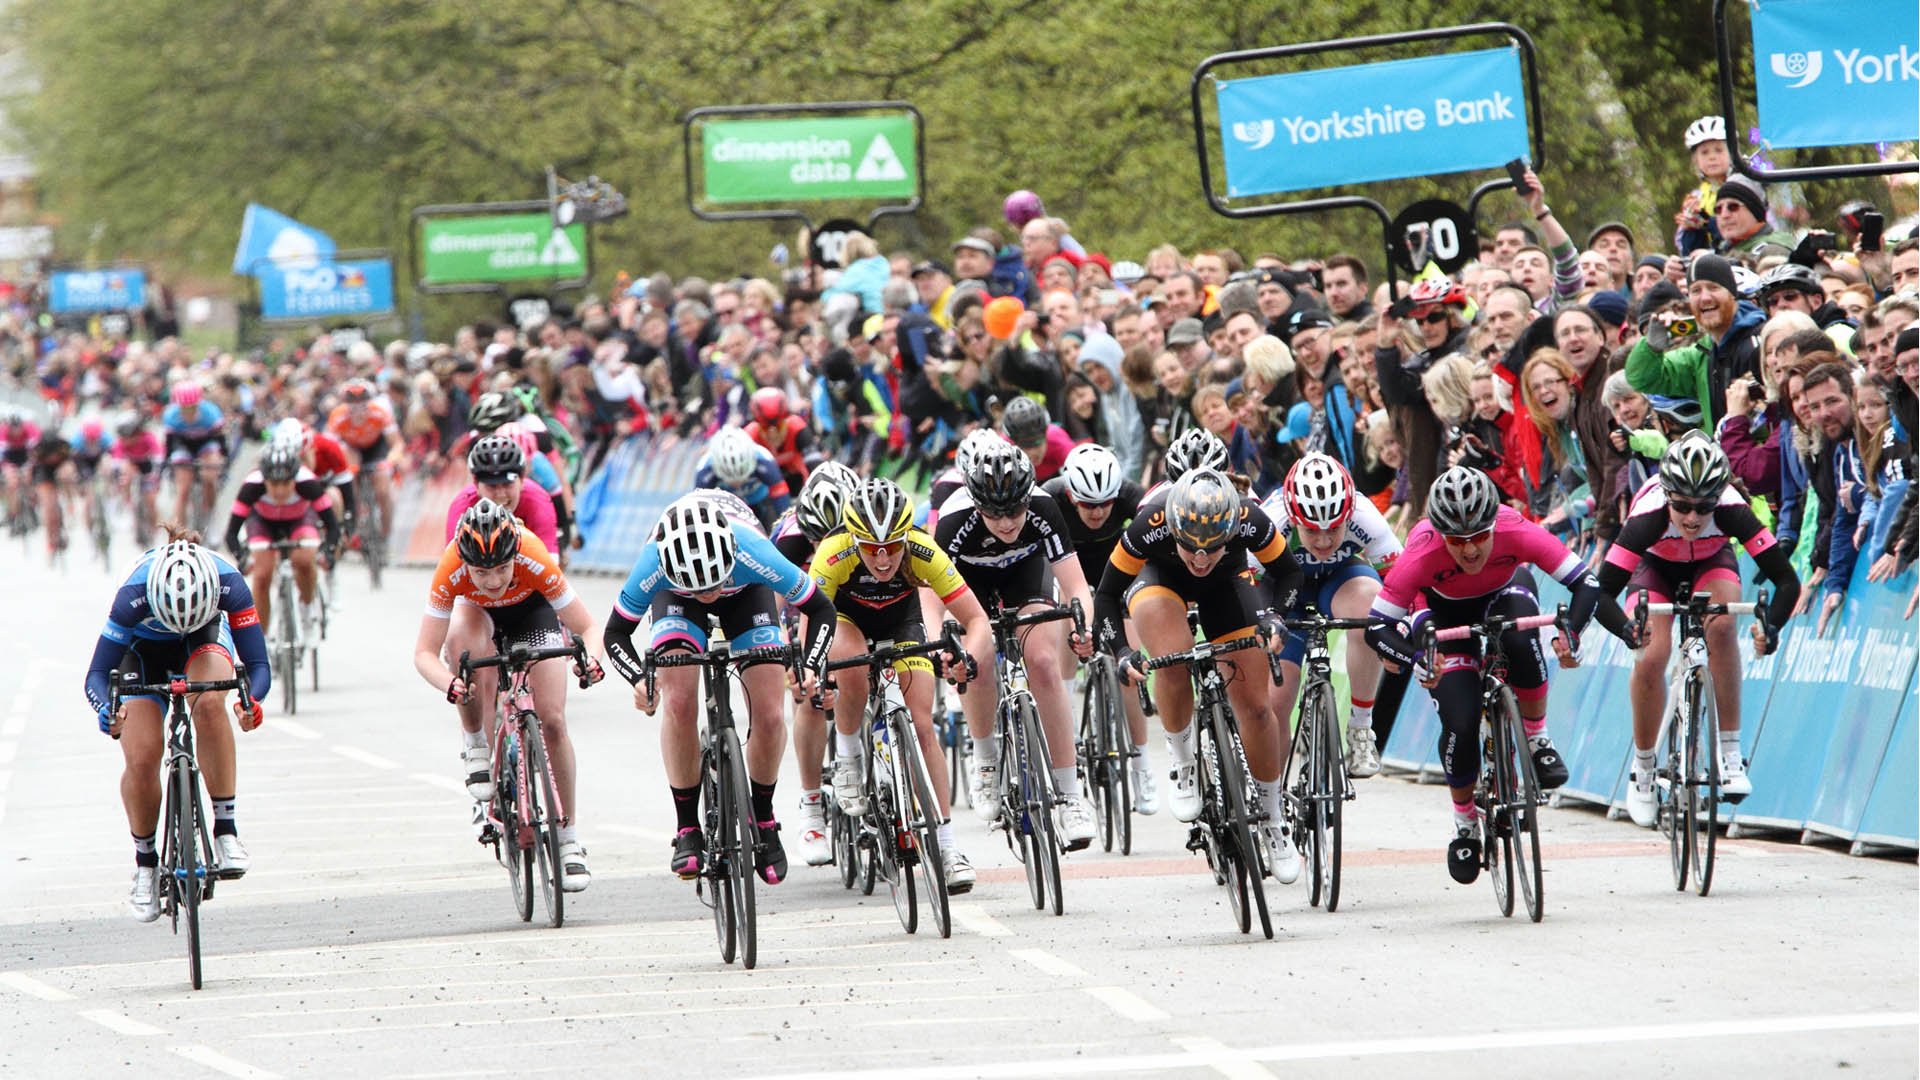 Women's Tour De Yorkshire 2015